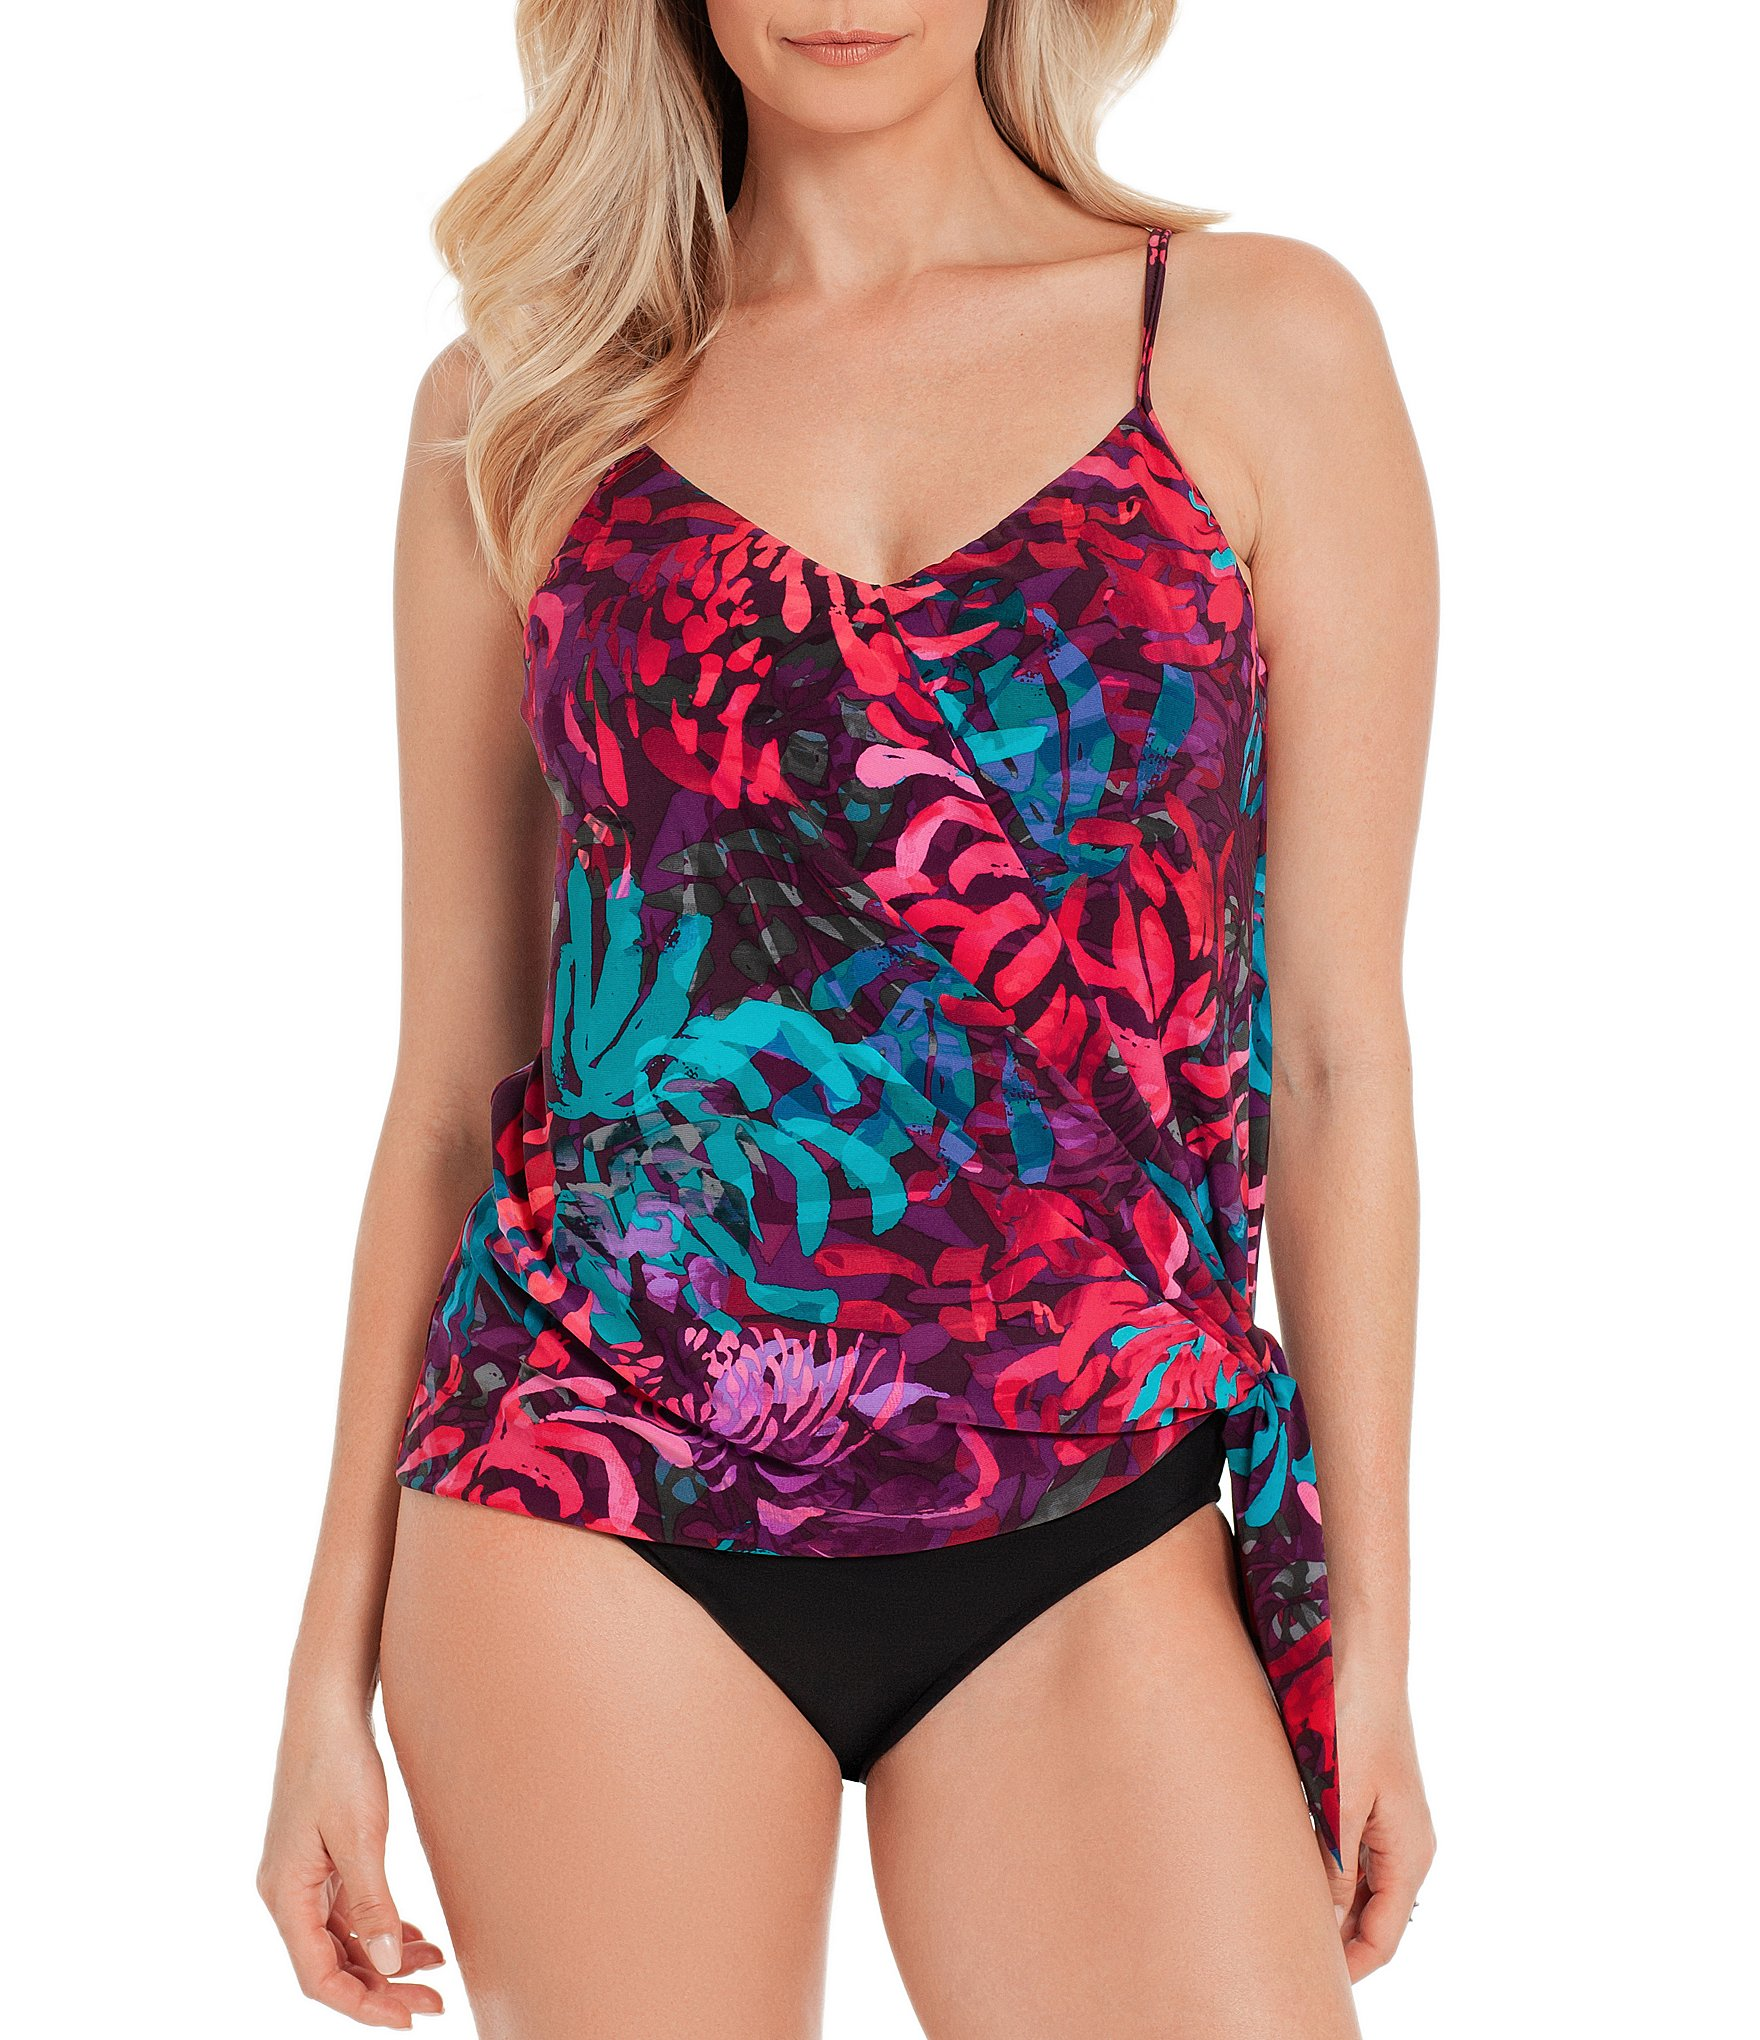 807a06abb4 MagicsuitCoral Springs Alex Underwire Tankini Swimsuit Top & Brief Shirred  Swimsuit Bottom